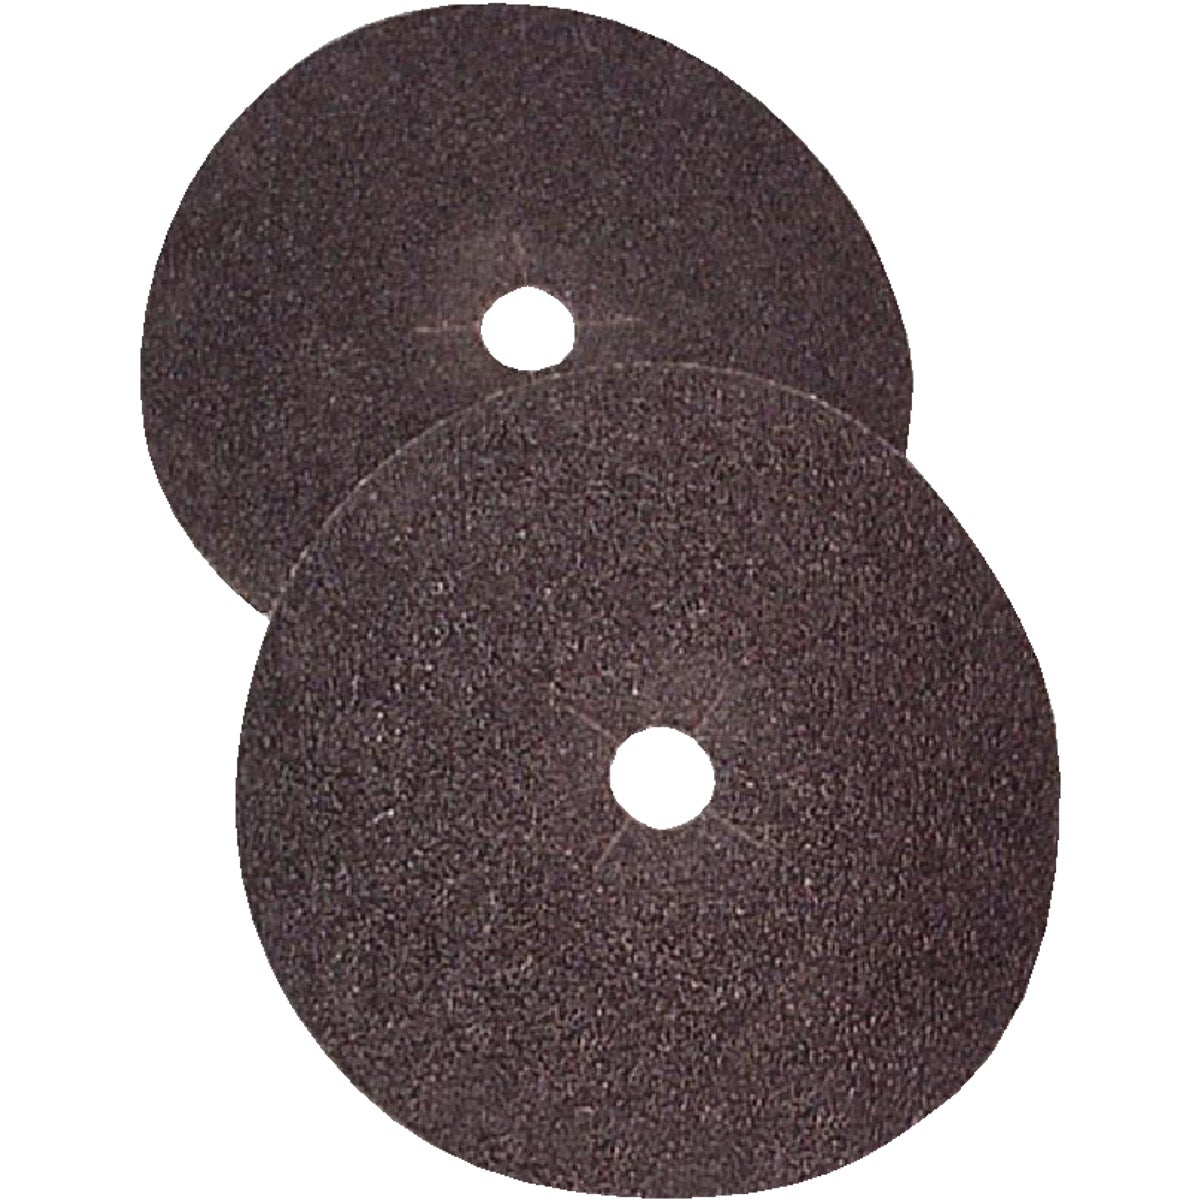 "5"" 100G FLR SANDING DISC - 006-850294 by Virginia Abrasives"